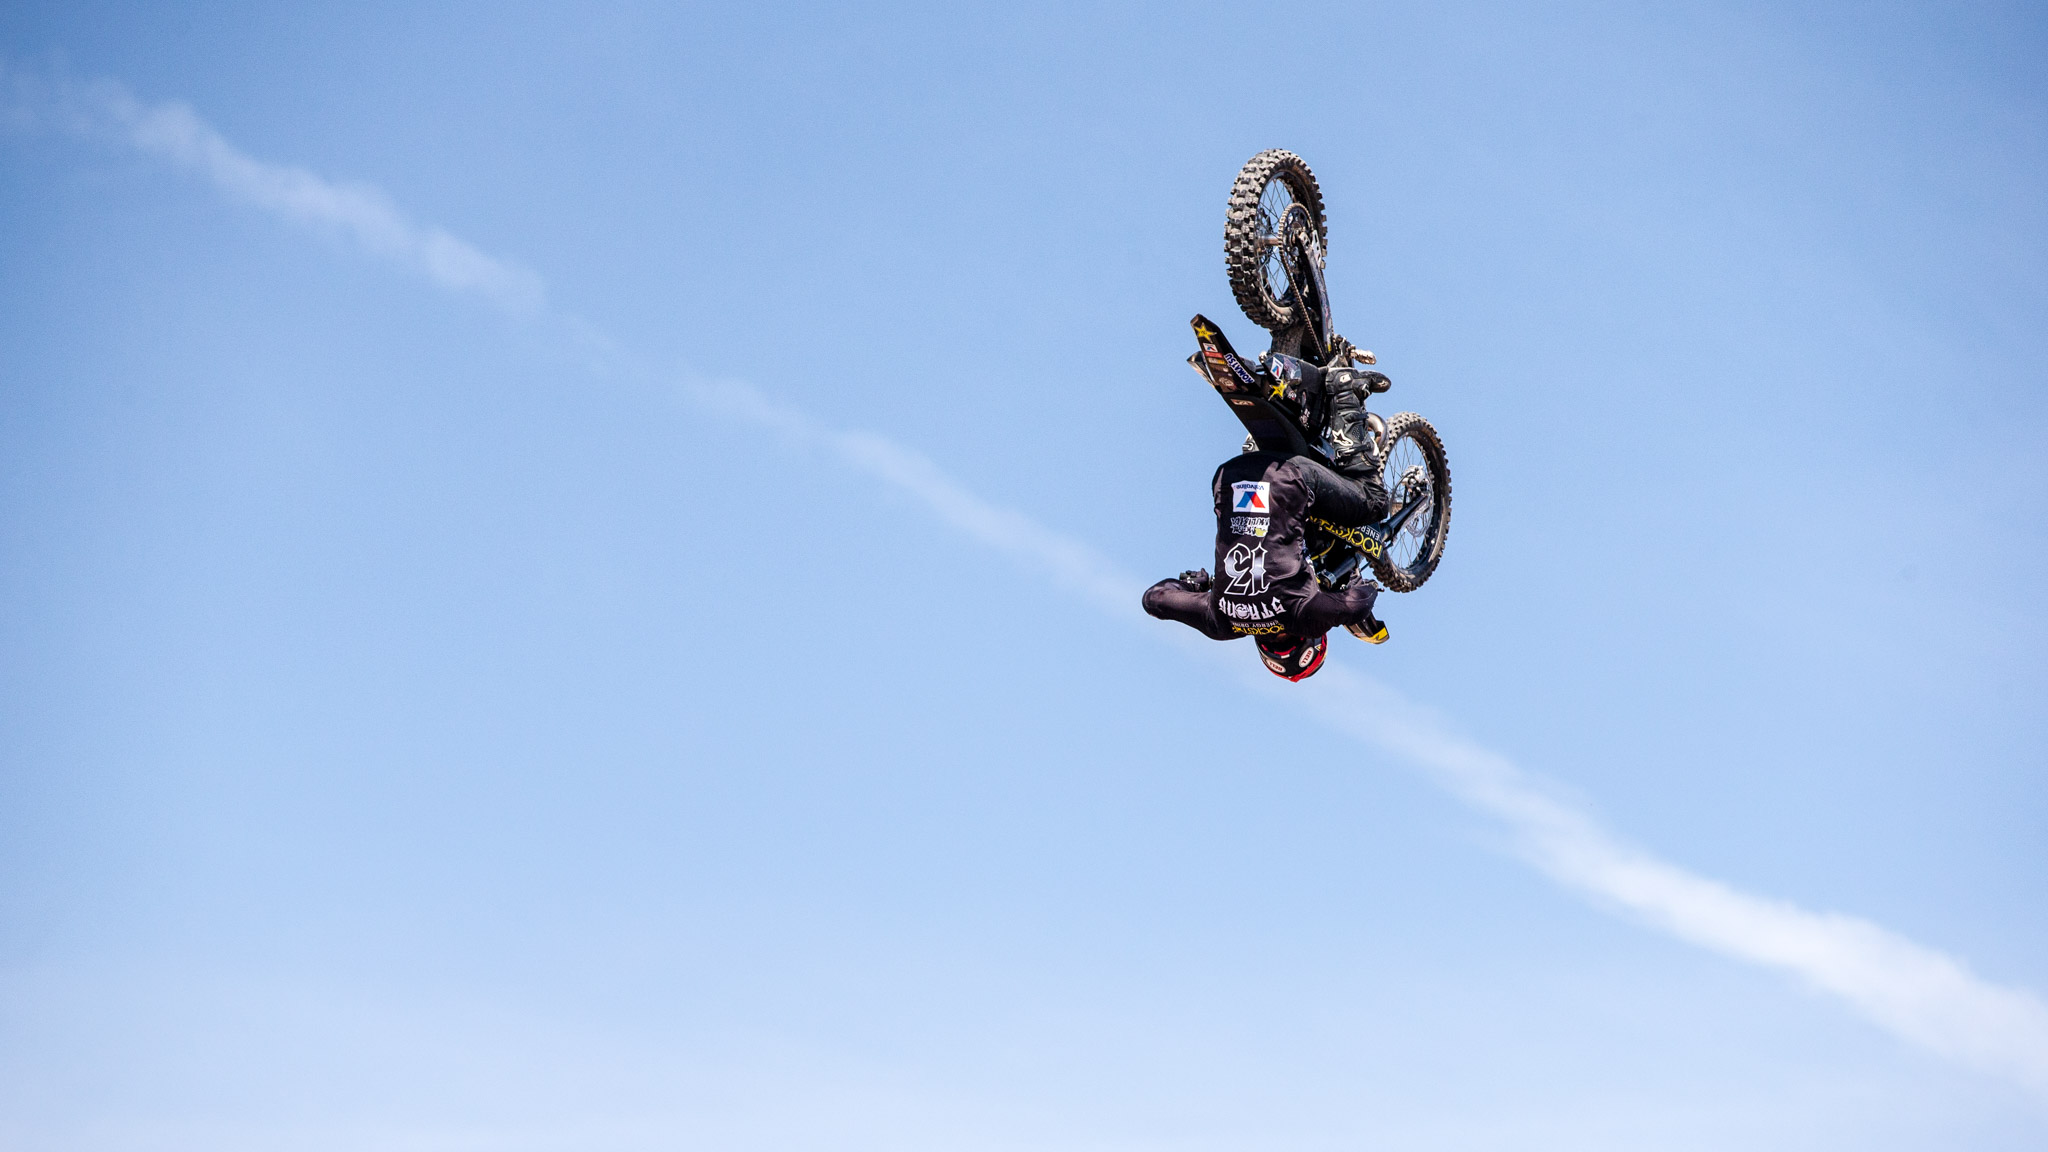 Moto X Best Trick: Jacko Strong